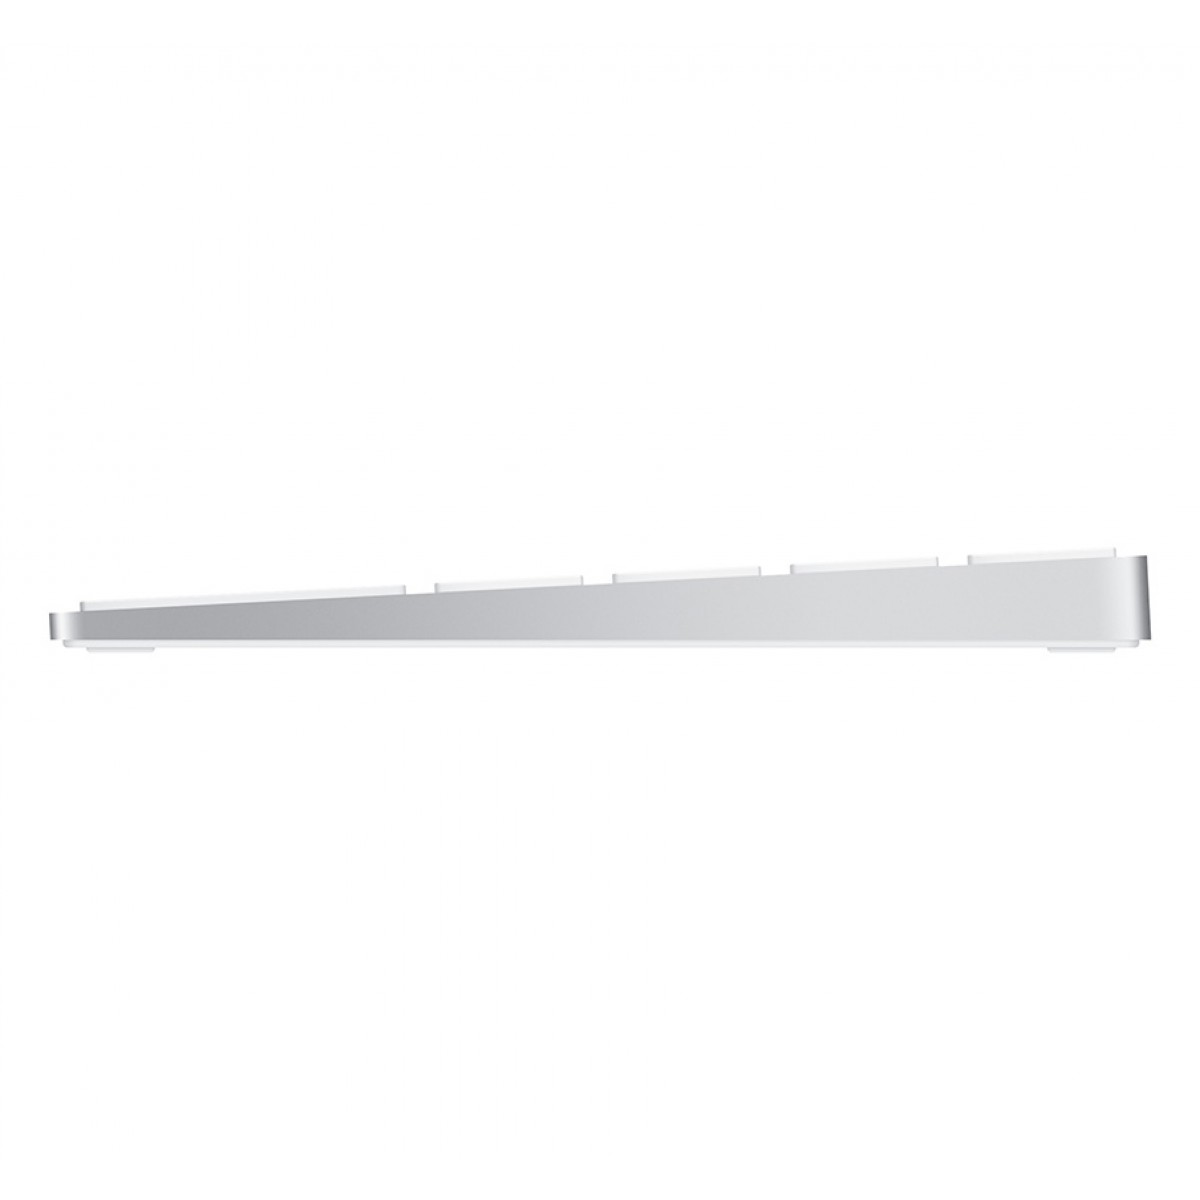 Tipkovnica APPLE MAGIC KEYBOARD WITH NUMERIC -INTER/ENG